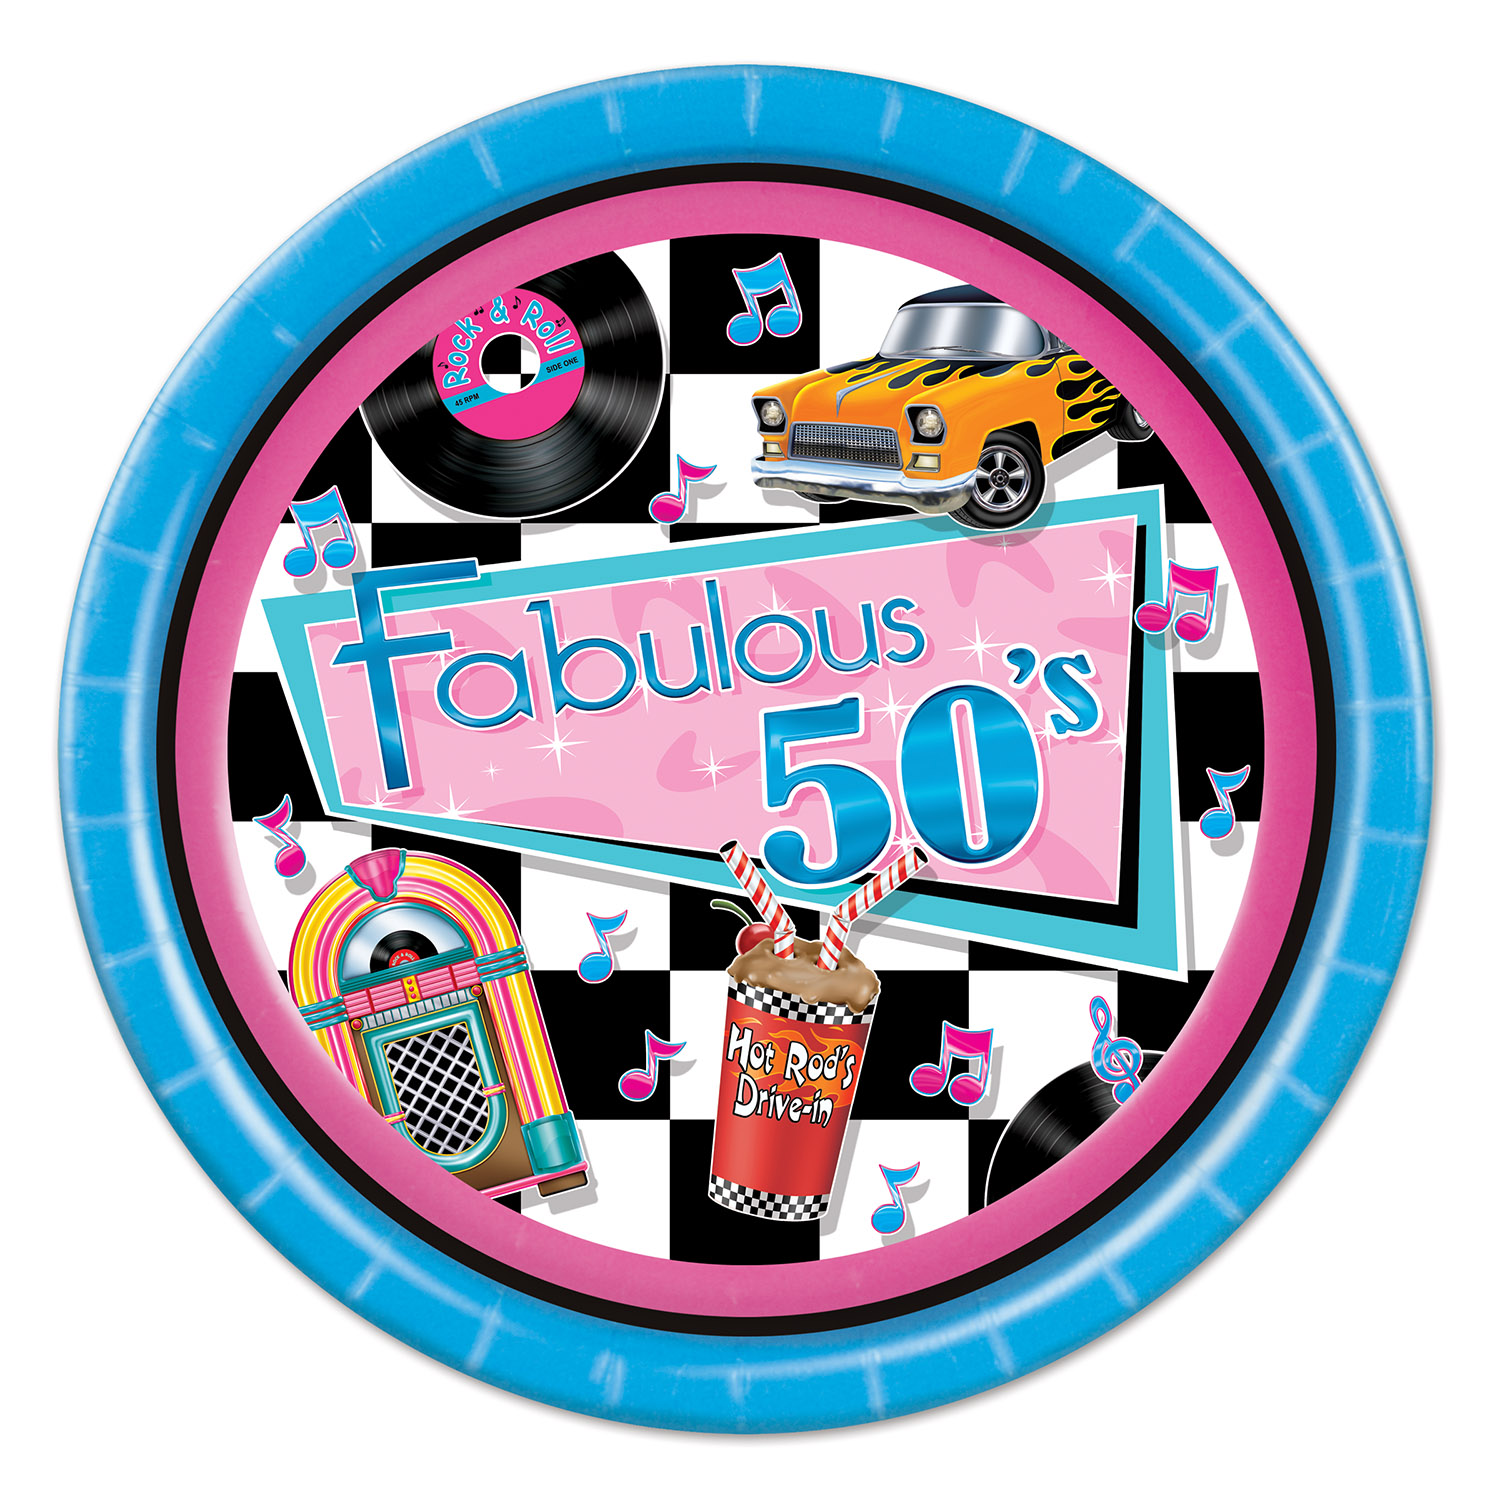 Fabulous 50s Plates Pack Of 96 Rock And Roll Paper